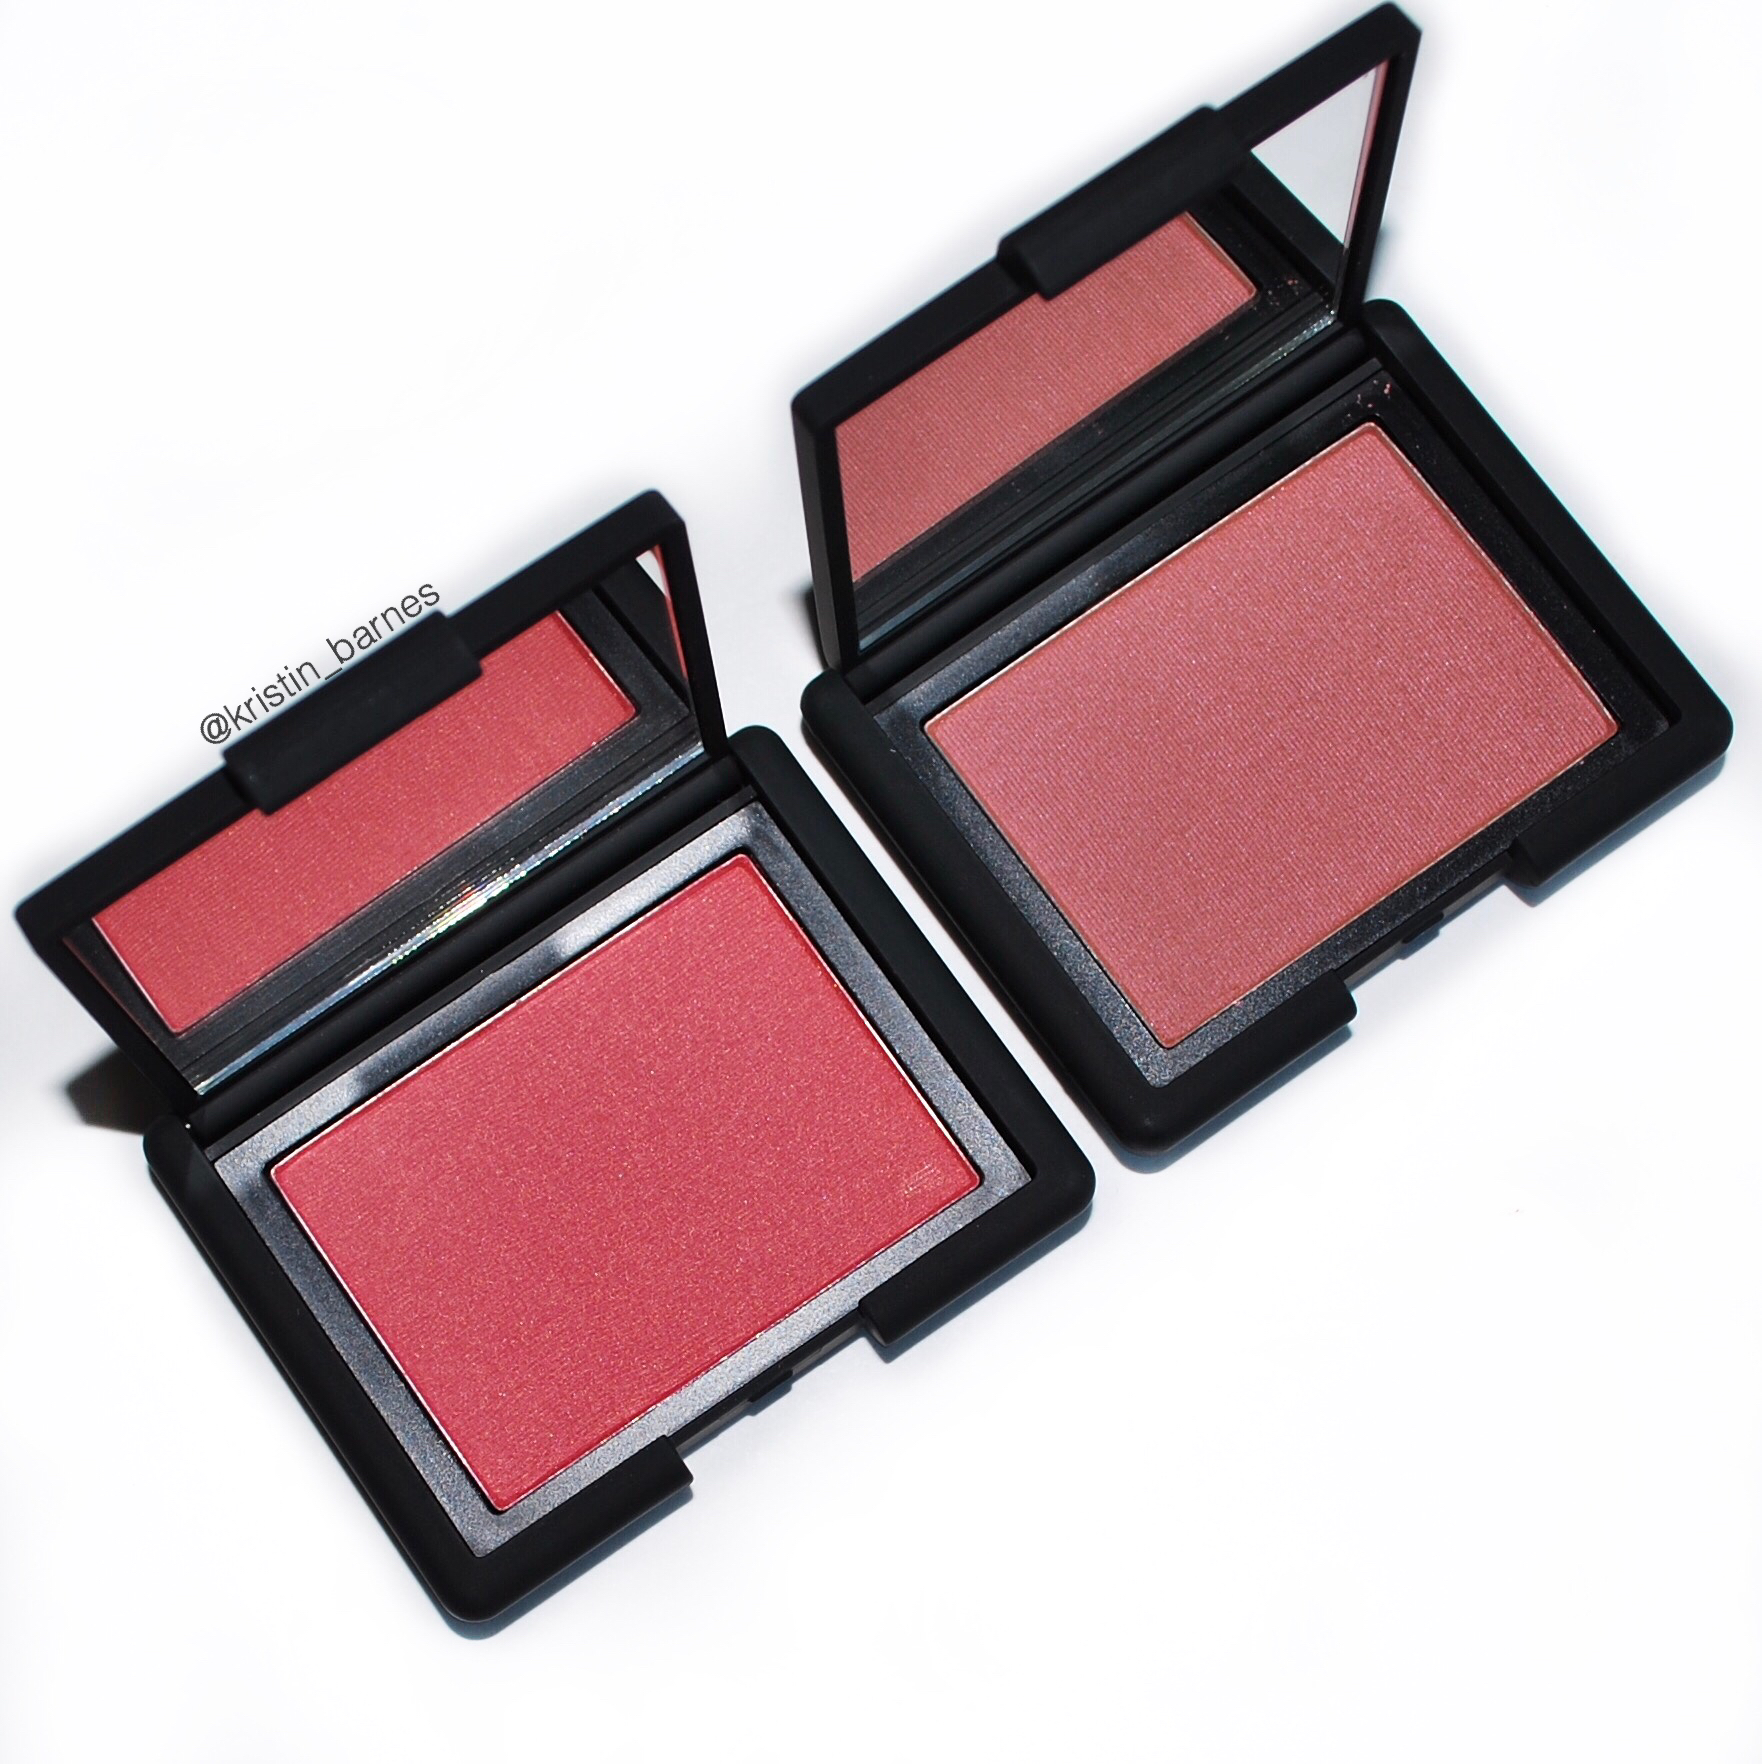 Re: Let's Talk About NARS! - Page 54 - BeautyTalk